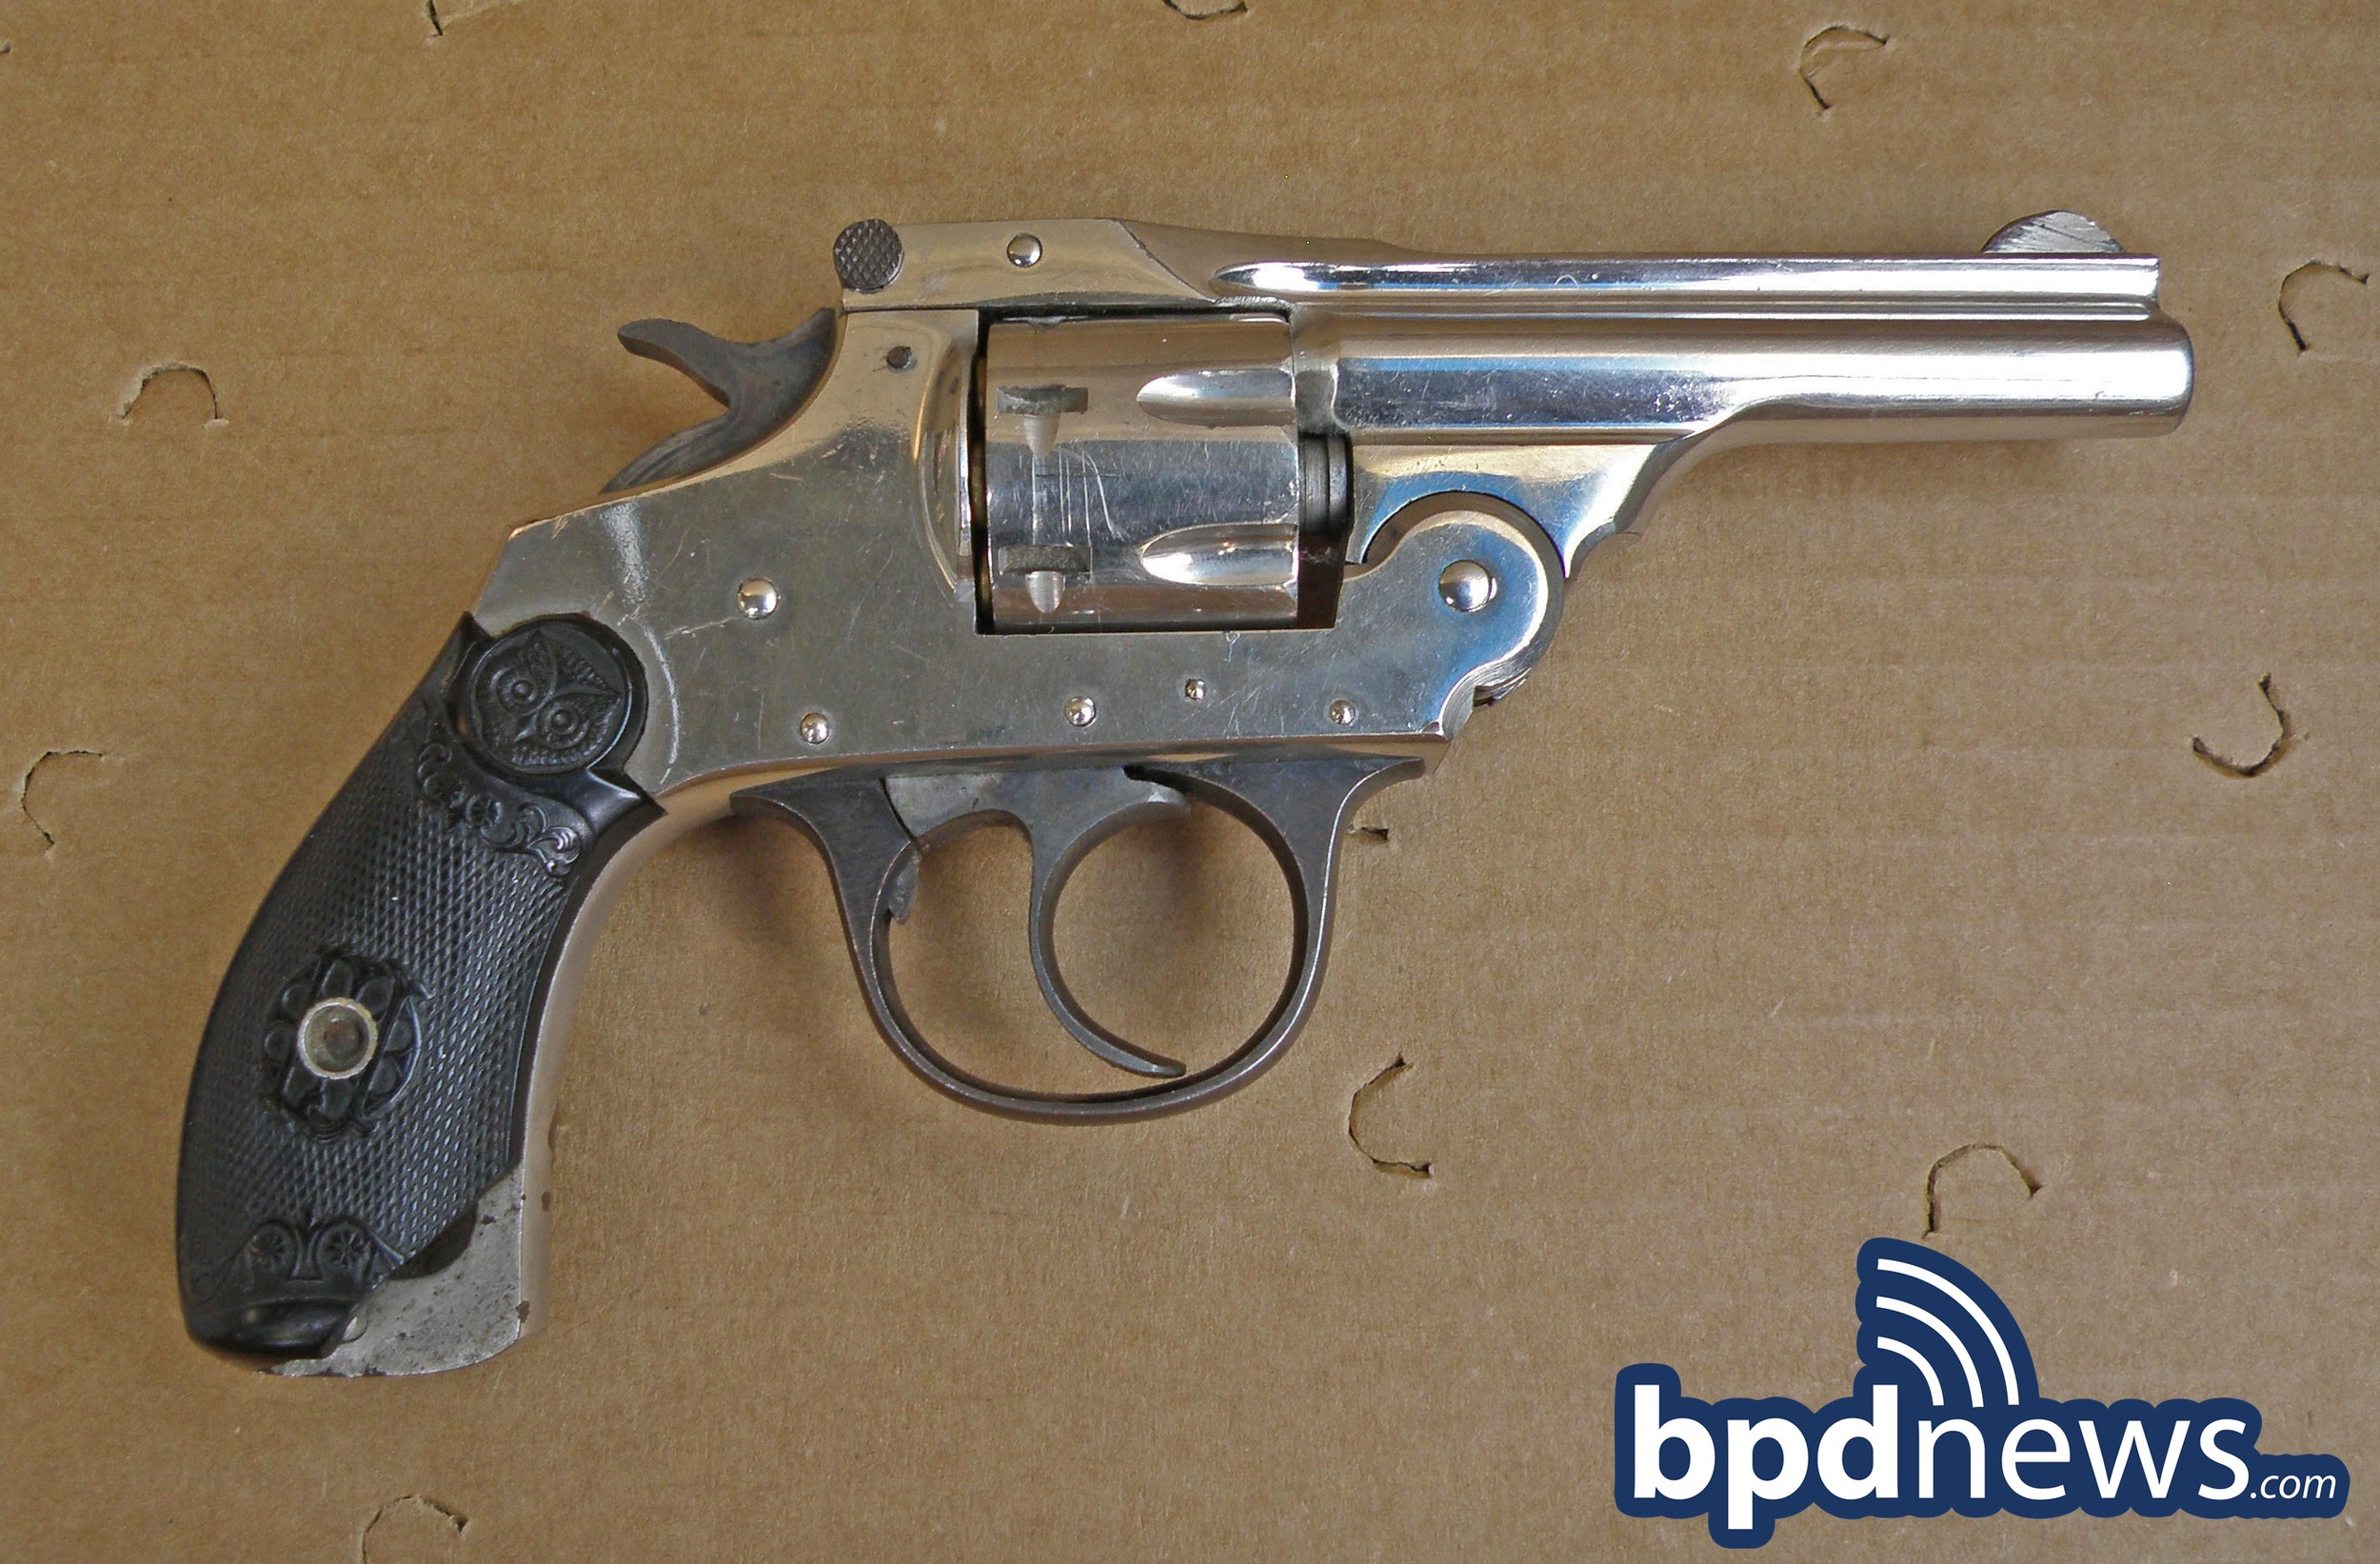 firearm from incident #1